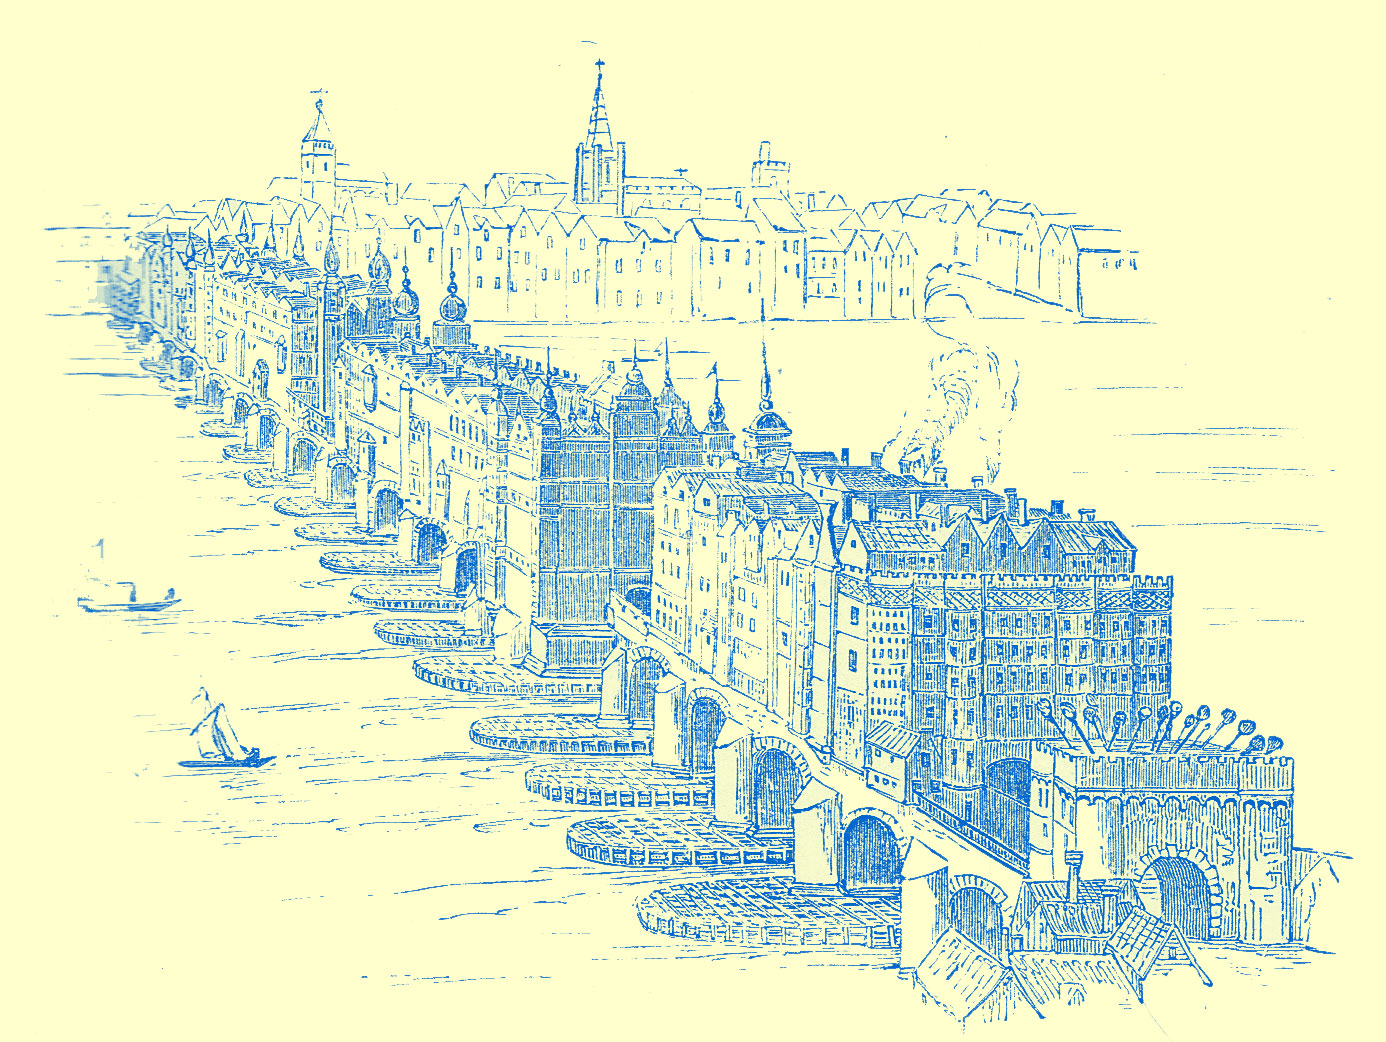 An Engraving of the old London Bridge with many multi-storied buildings crowded all along it.  It is shown over the River and the town of London is shown in the distance.